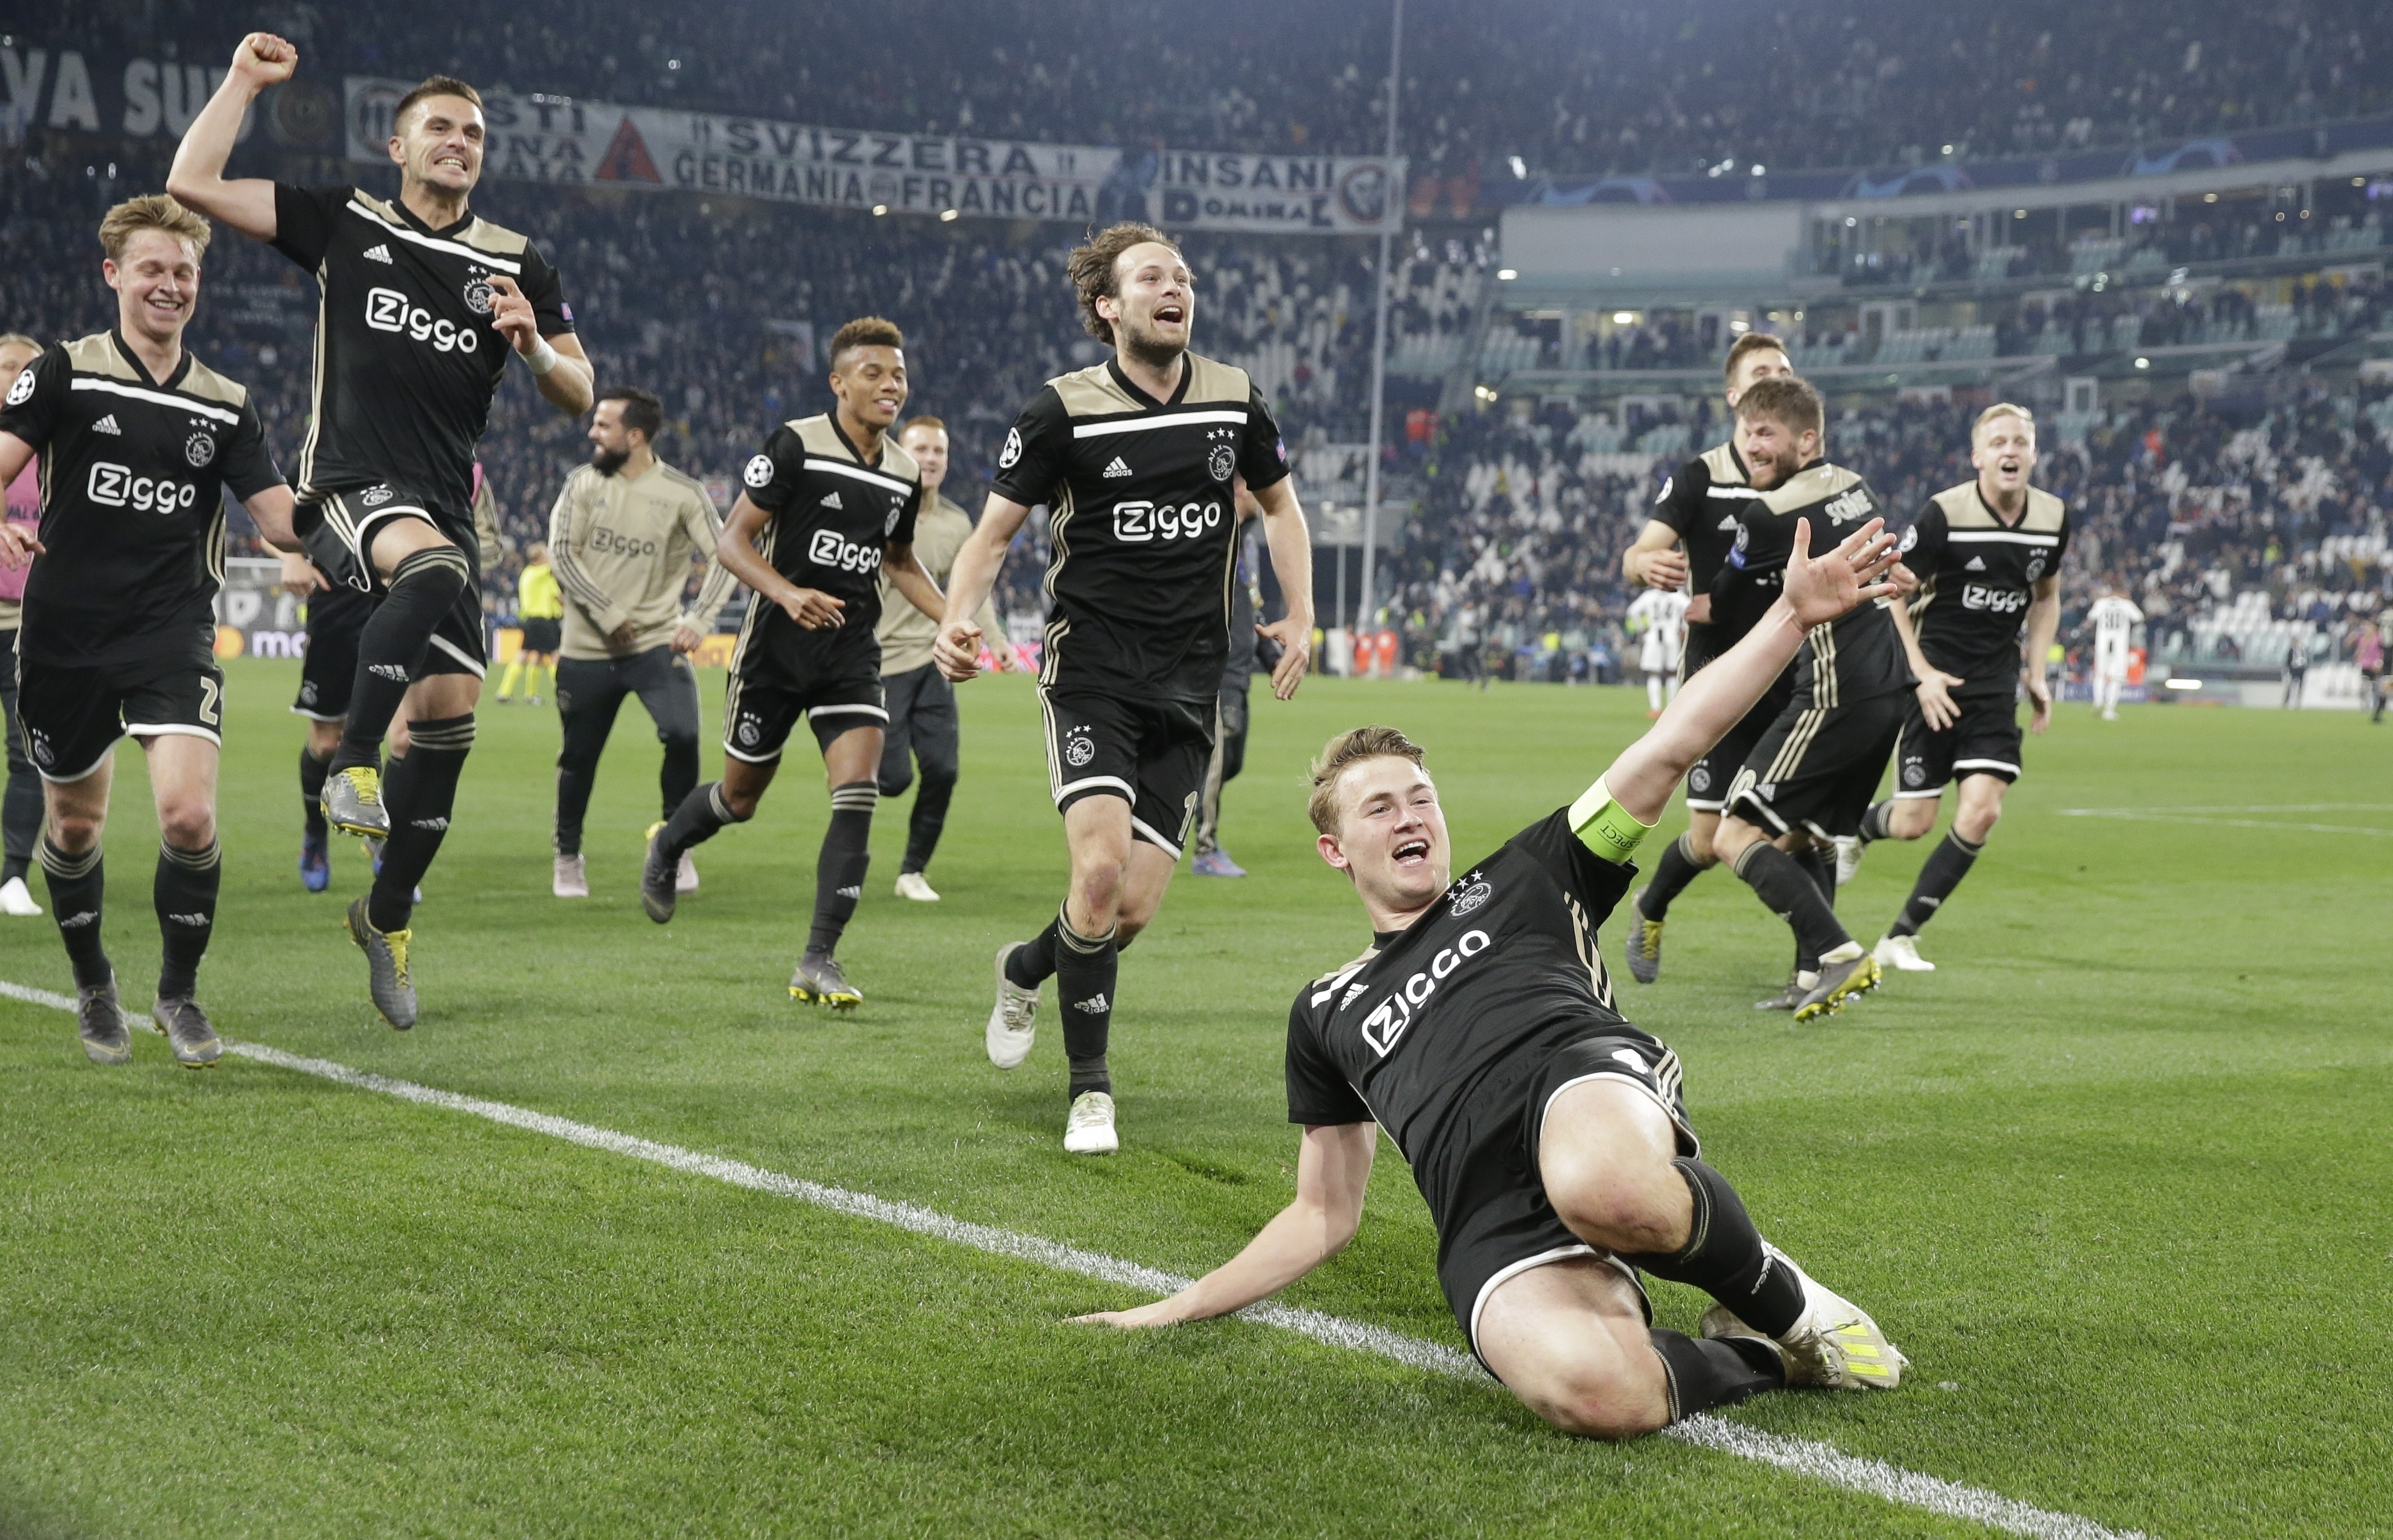 Ajax have beaten Juventus and Real Madrid on the way to the Champions League semi. Image: PA Images